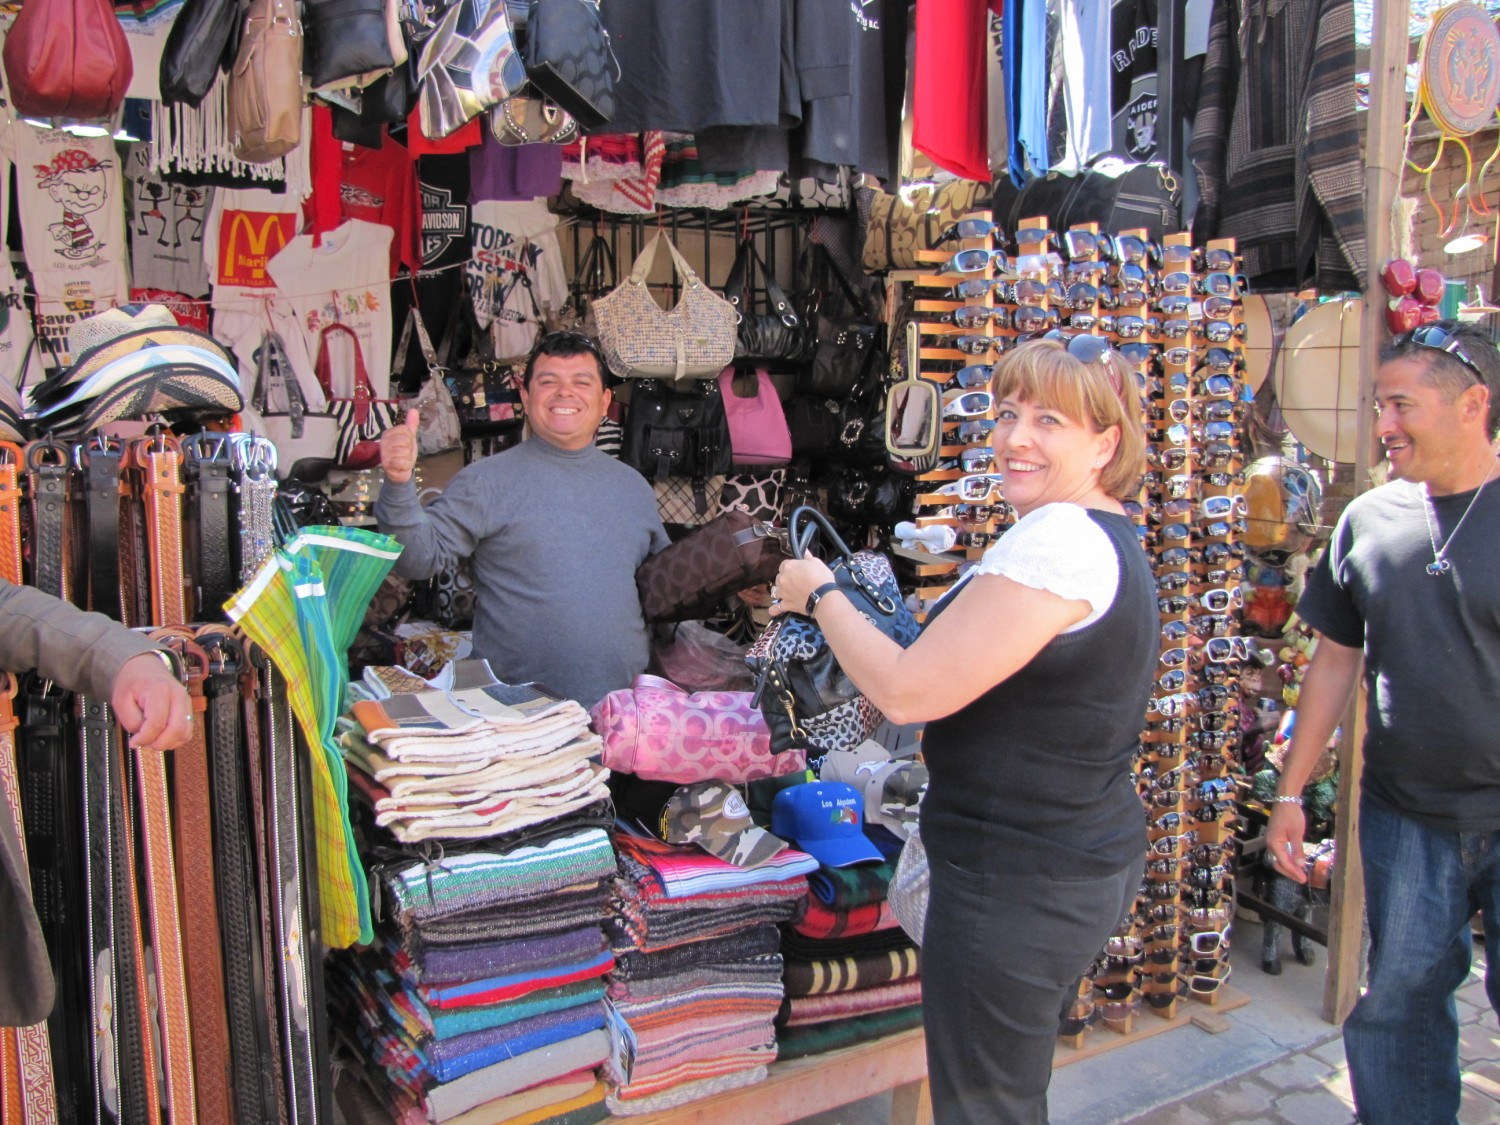 """Dianne bargaining in Mexico over a """"Coach"""" purse"""